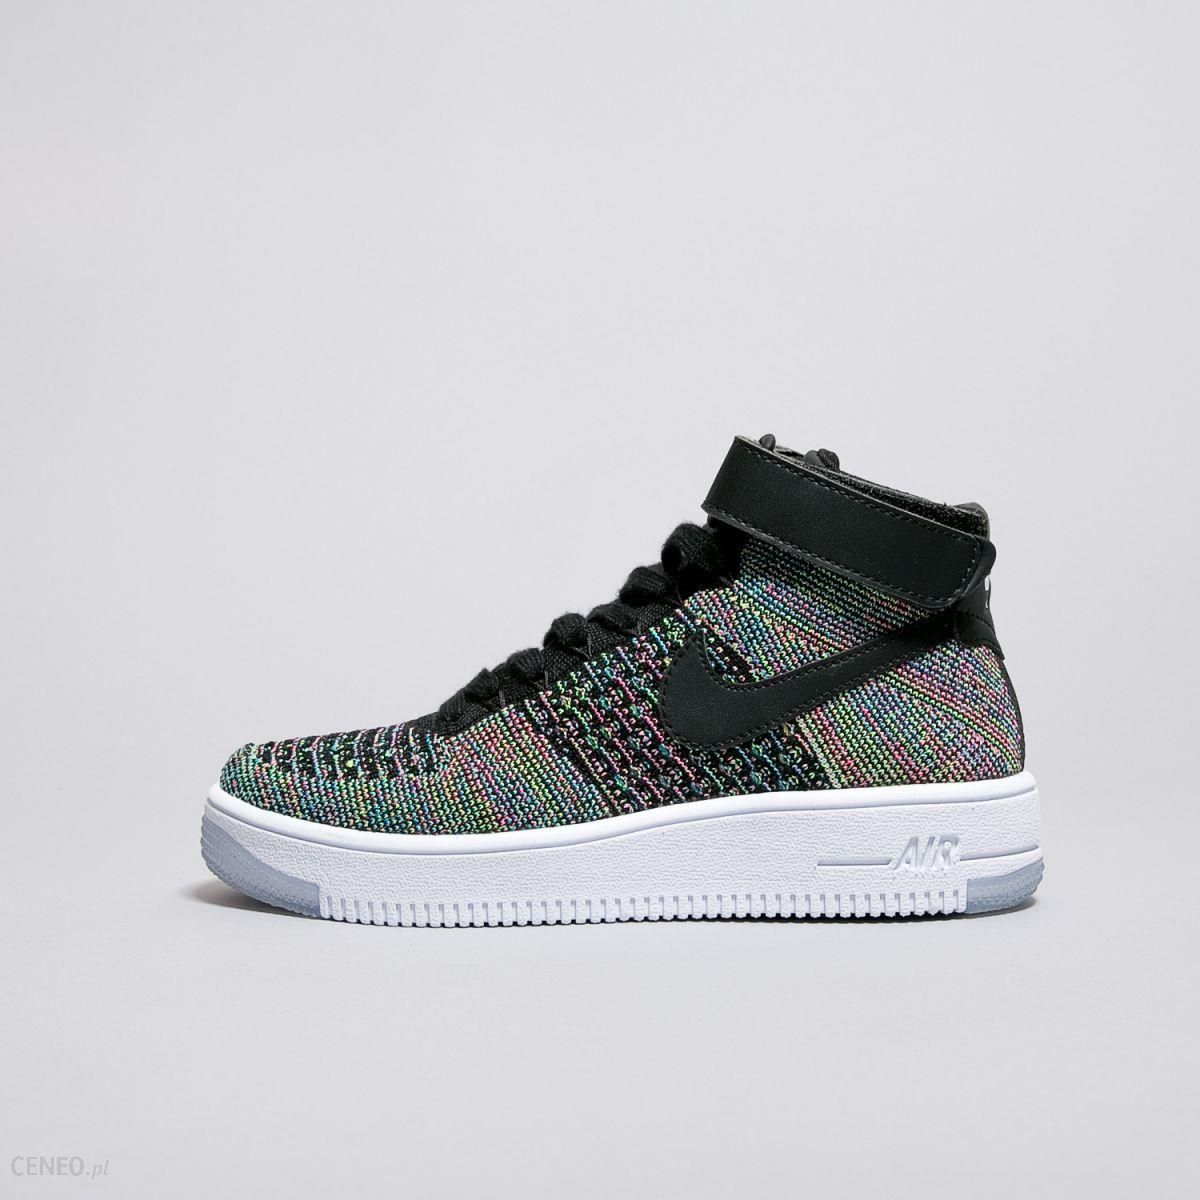 AIR FORCE 1 ULTRA MID FLYKNIT (GS) 862824 001